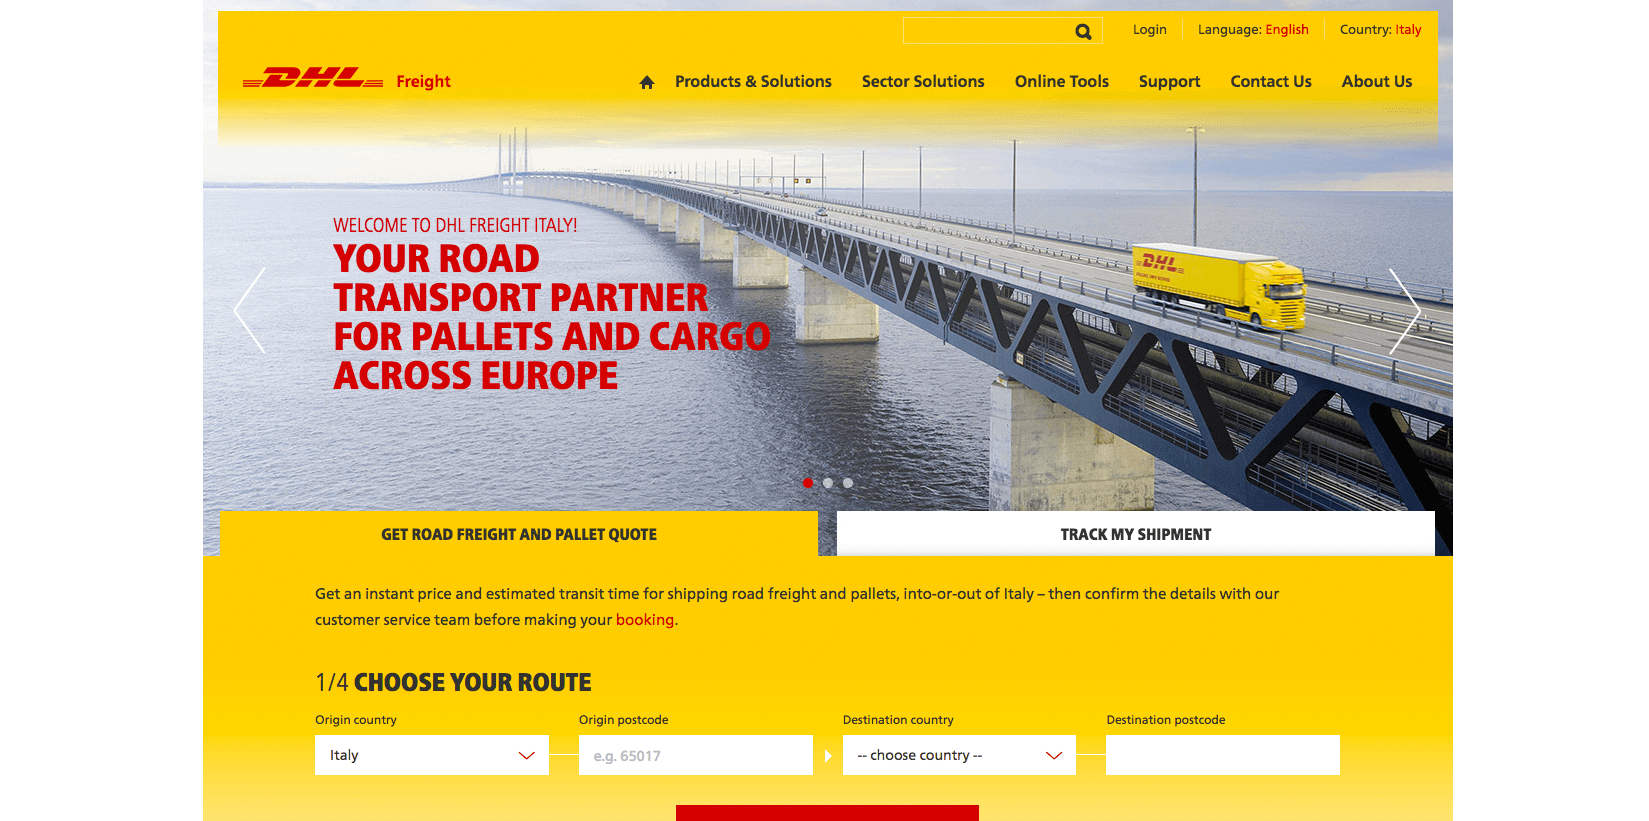 Kentico Agency sunzinet for DHL